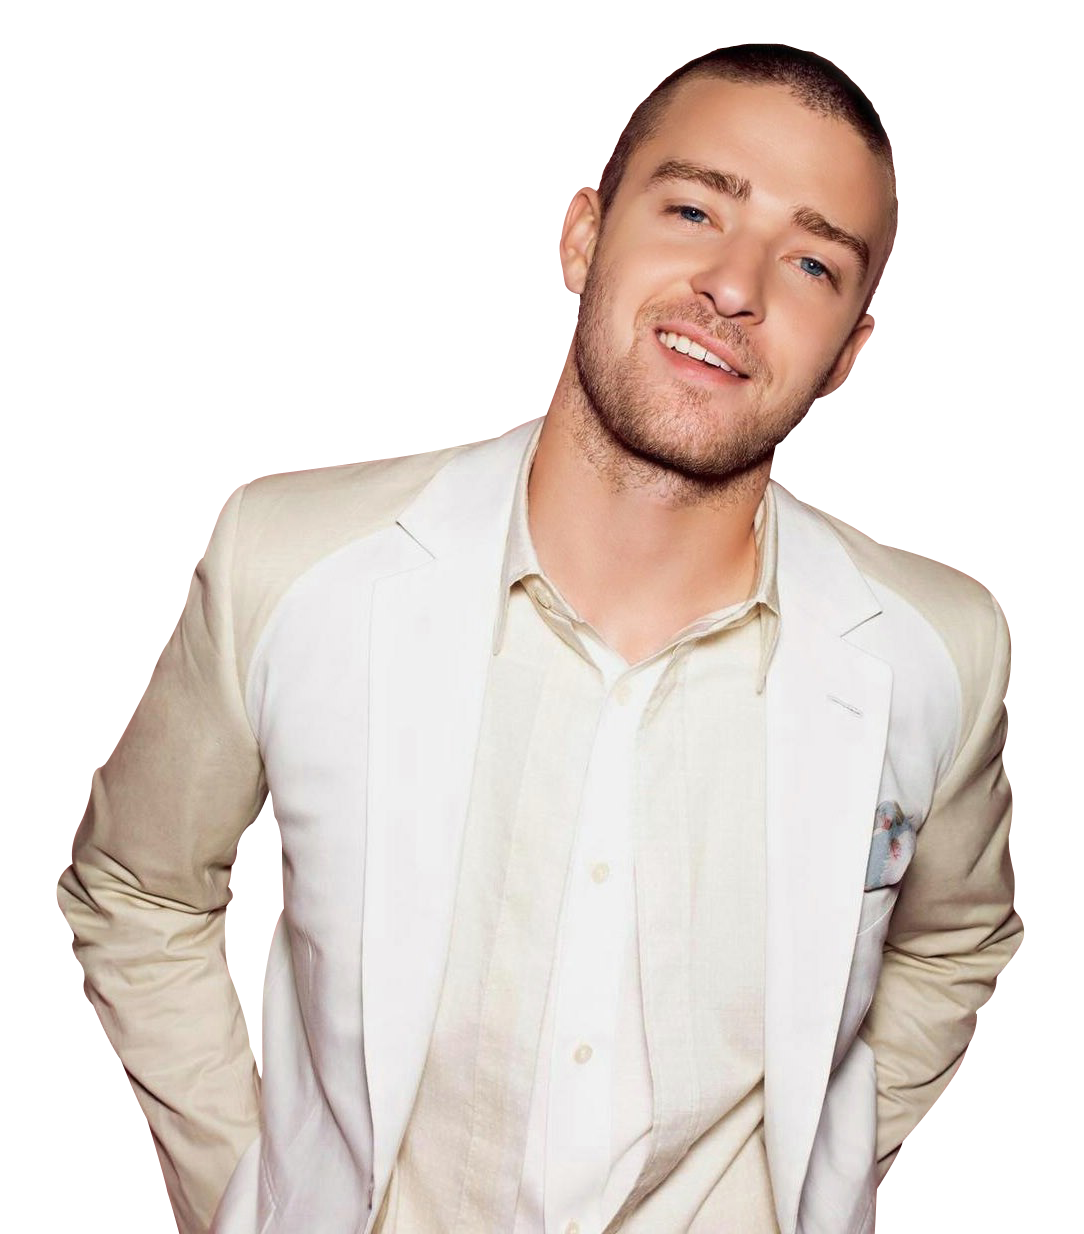 Justin Timberlake Clipart-Clipartlook.co-Justin Timberlake Clipart-Clipartlook.com-1084-0